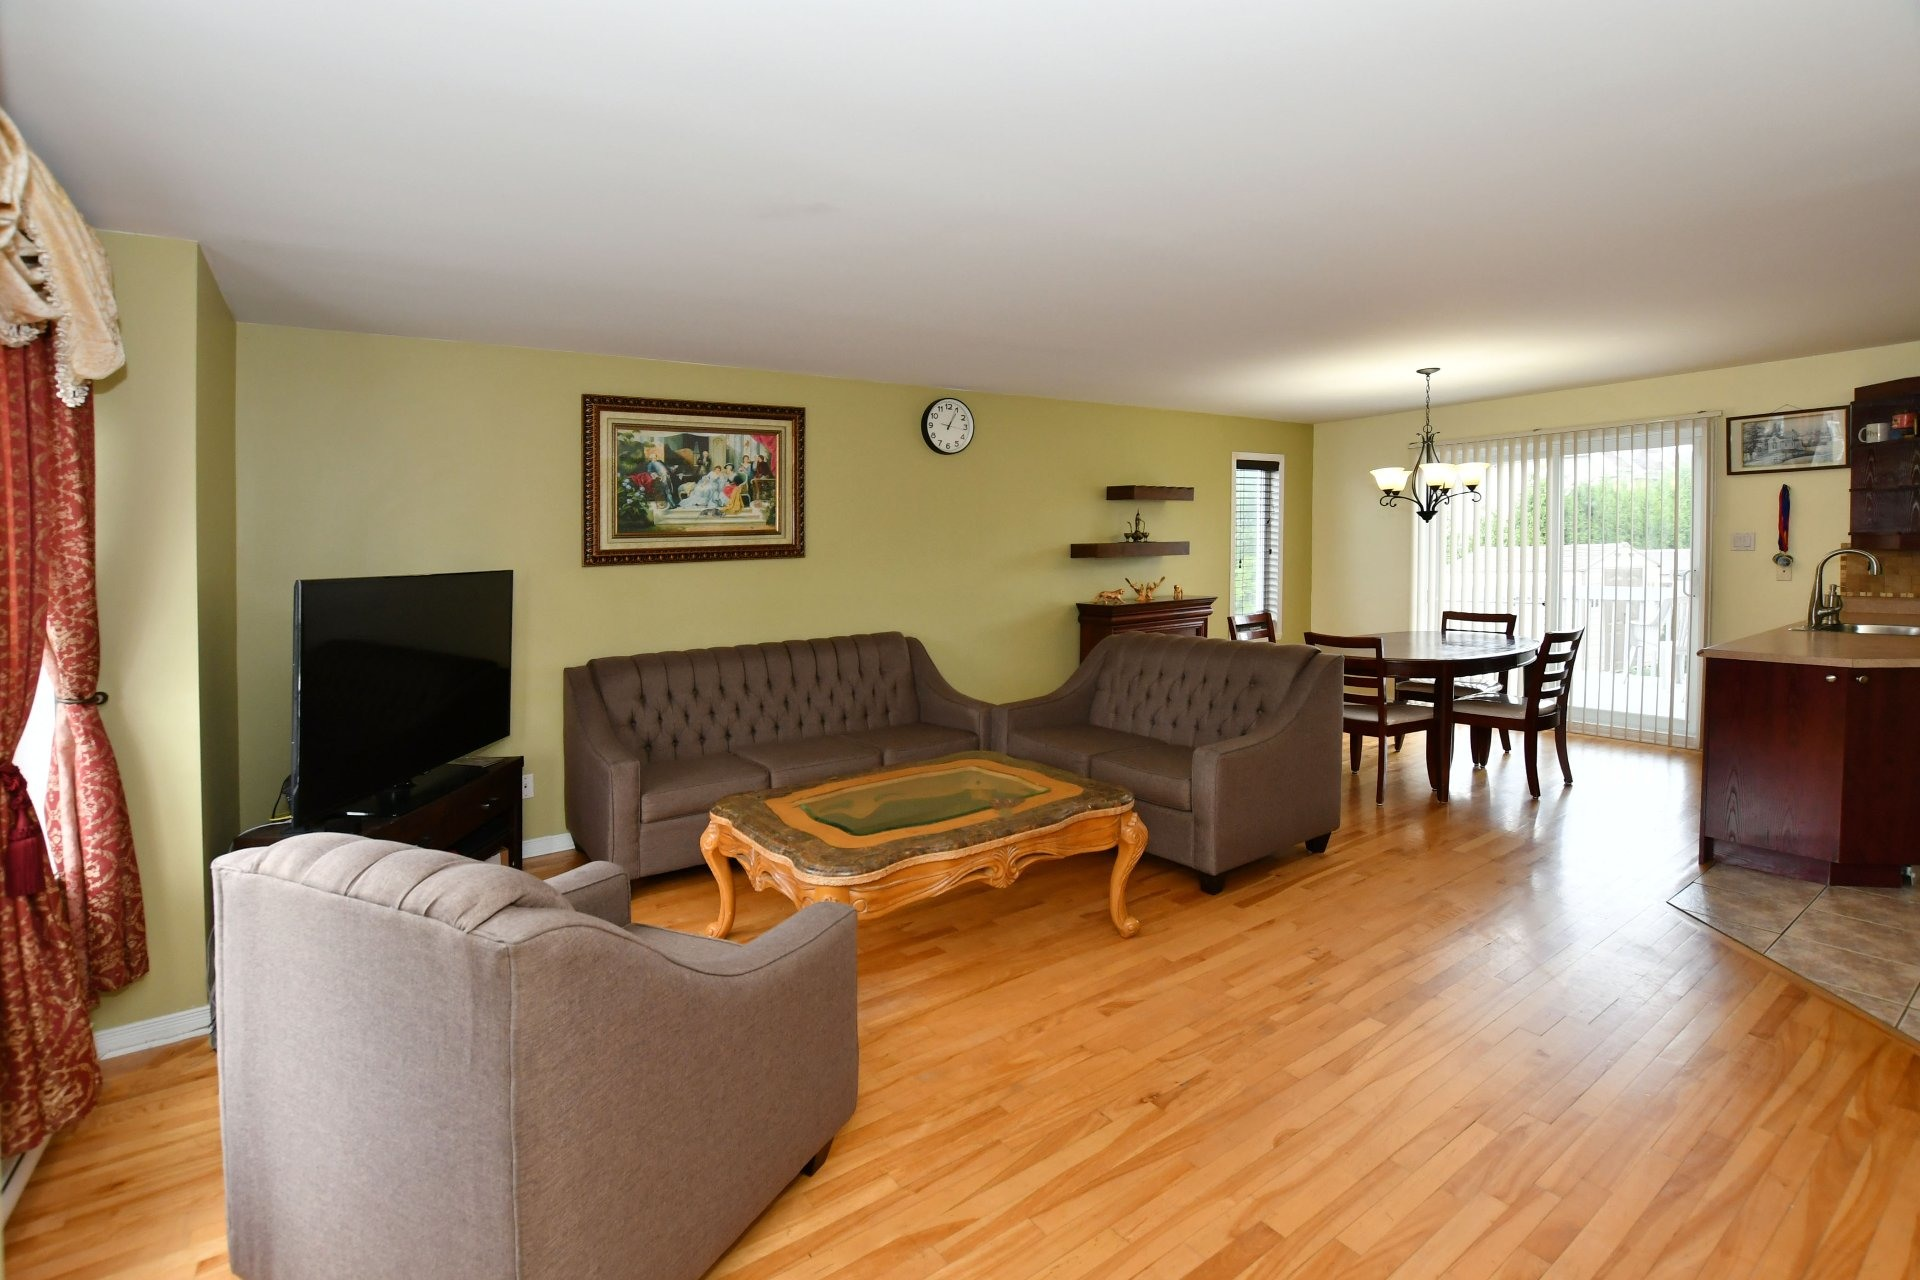 image 2 - House For sale Vaudreuil-Dorion - 10 rooms